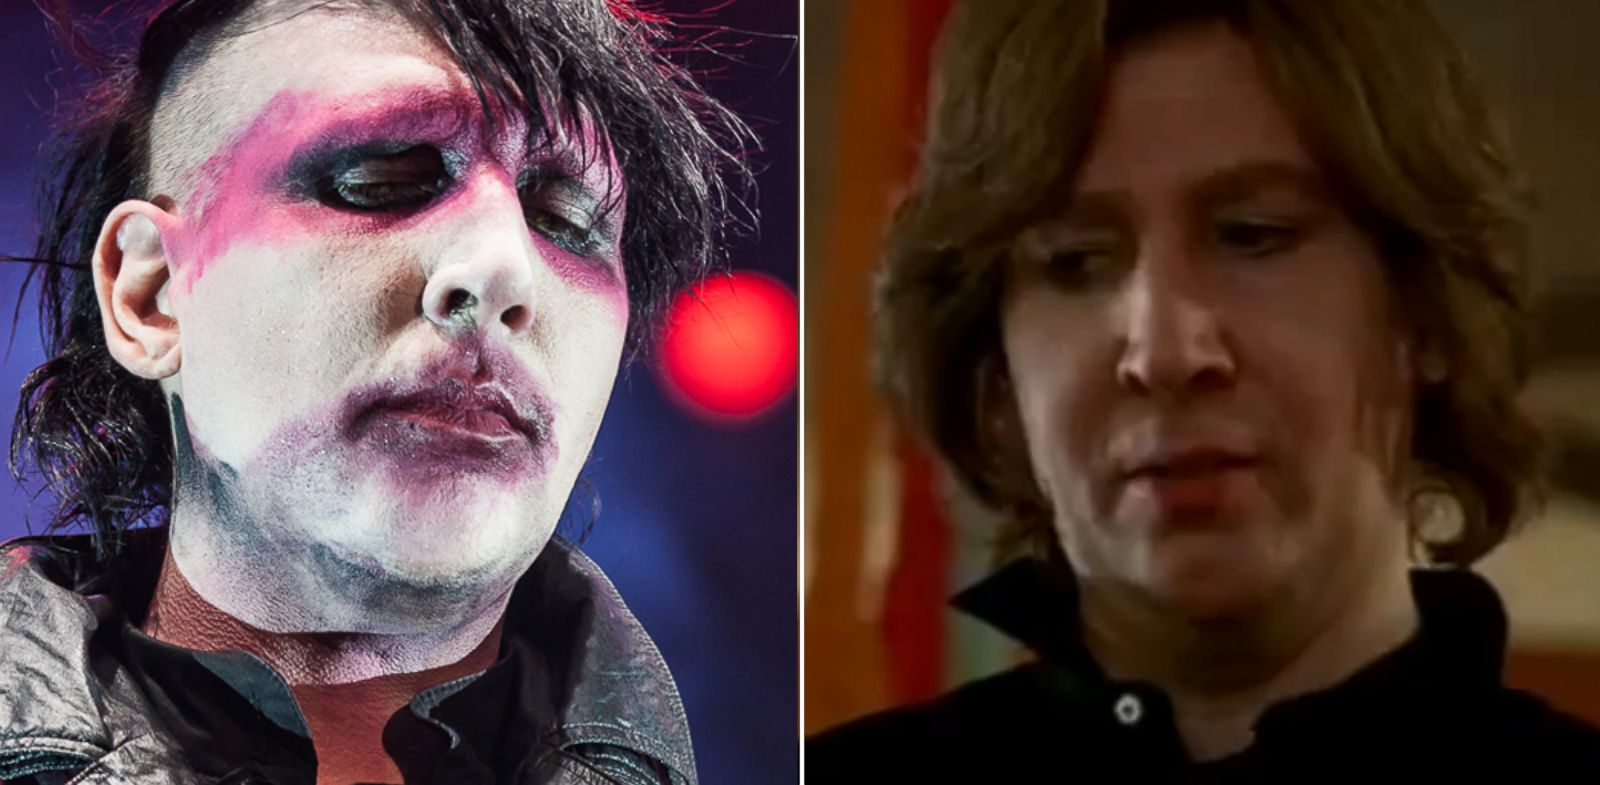 You Ll Never Believe What Marilyn Manson Looks Like